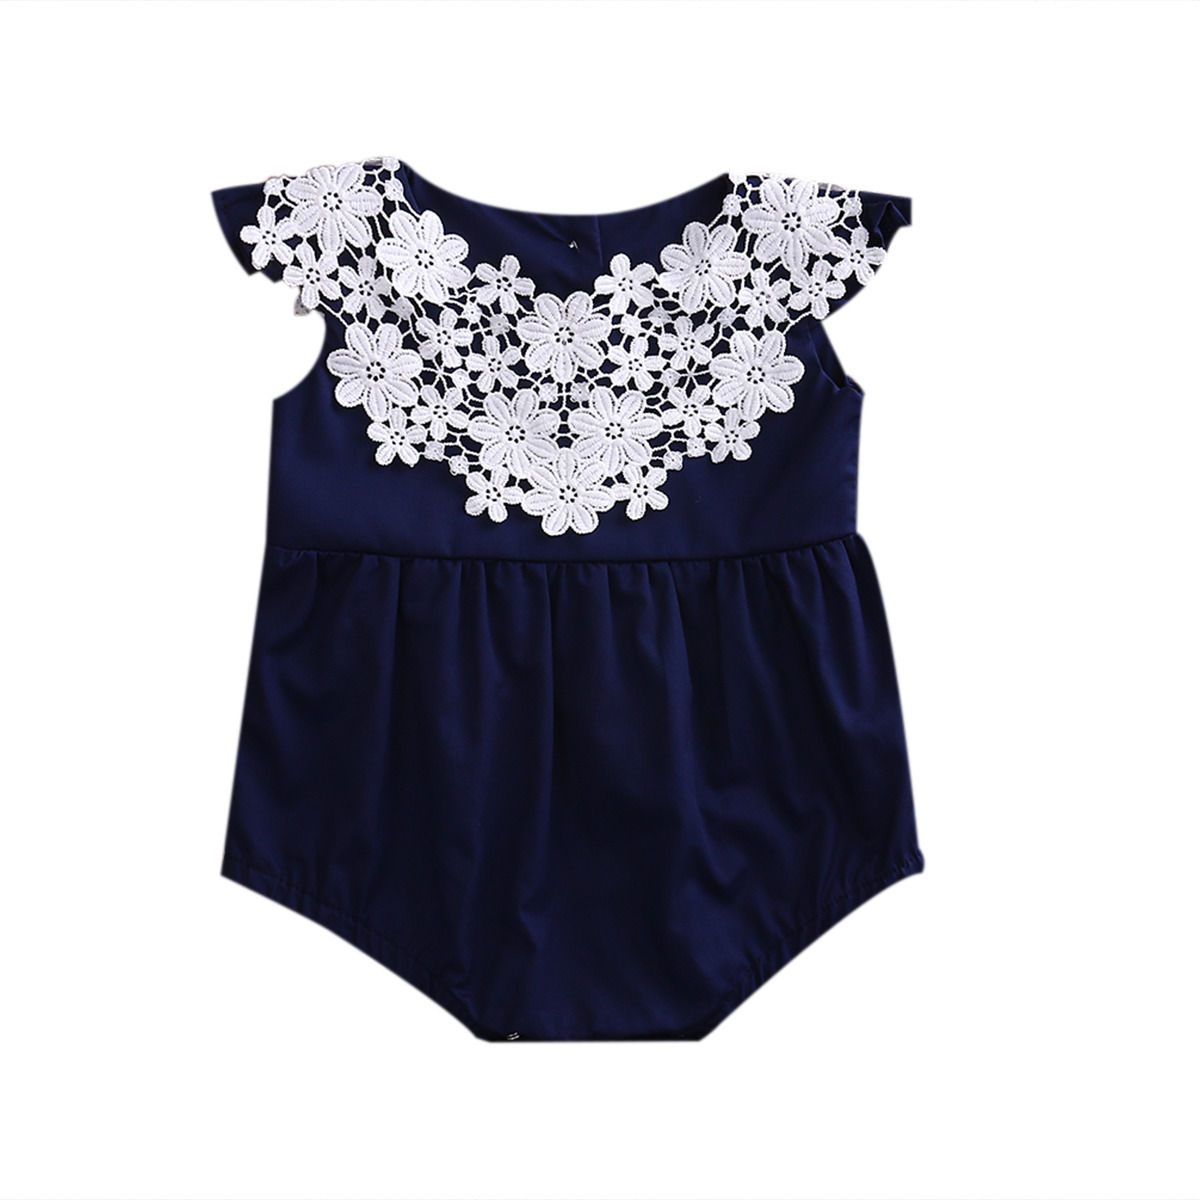 8d56e5d89 Newborn Baby Girl Lace Stitching Clothes Cotton Romper Navy Blue ...